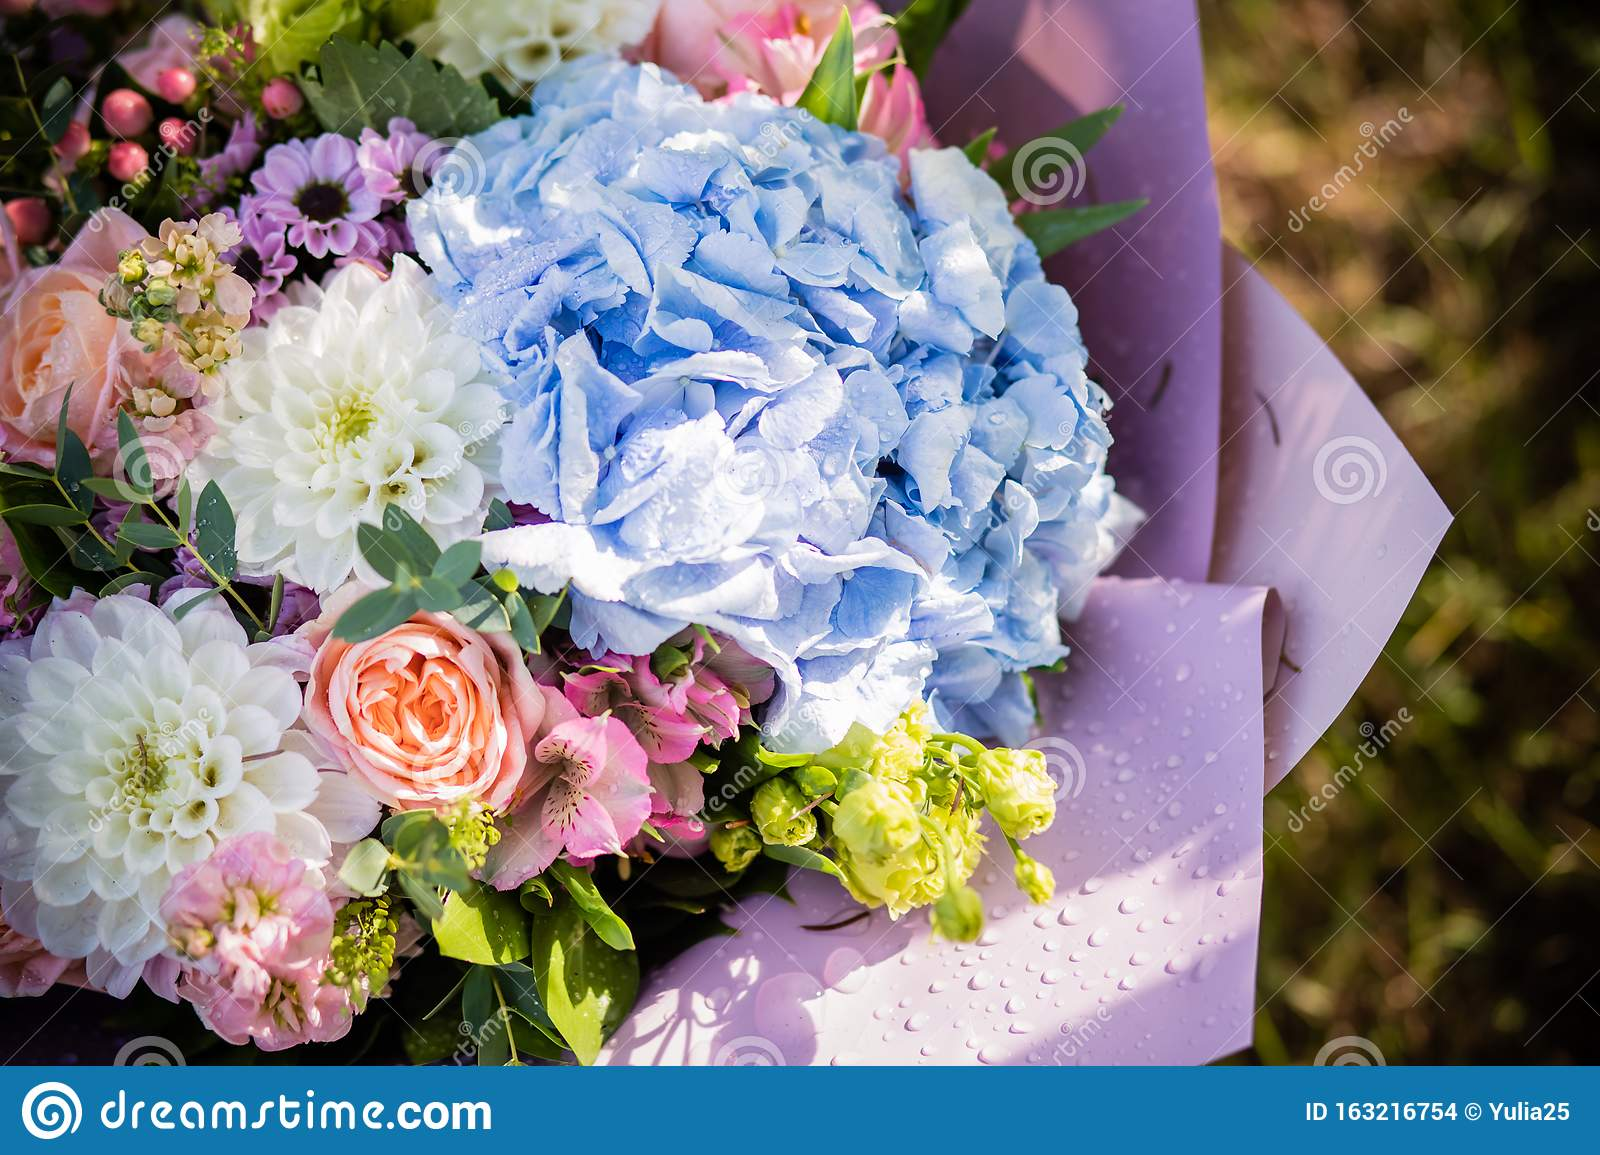 Beautiful Bouquet Of Bride Wedding Flowers Blue Hydrangea Fresh Pink Roses And Alstroemeria Bridal Decoration Fresh Stock Photo Image Of Flower Floral 163216754